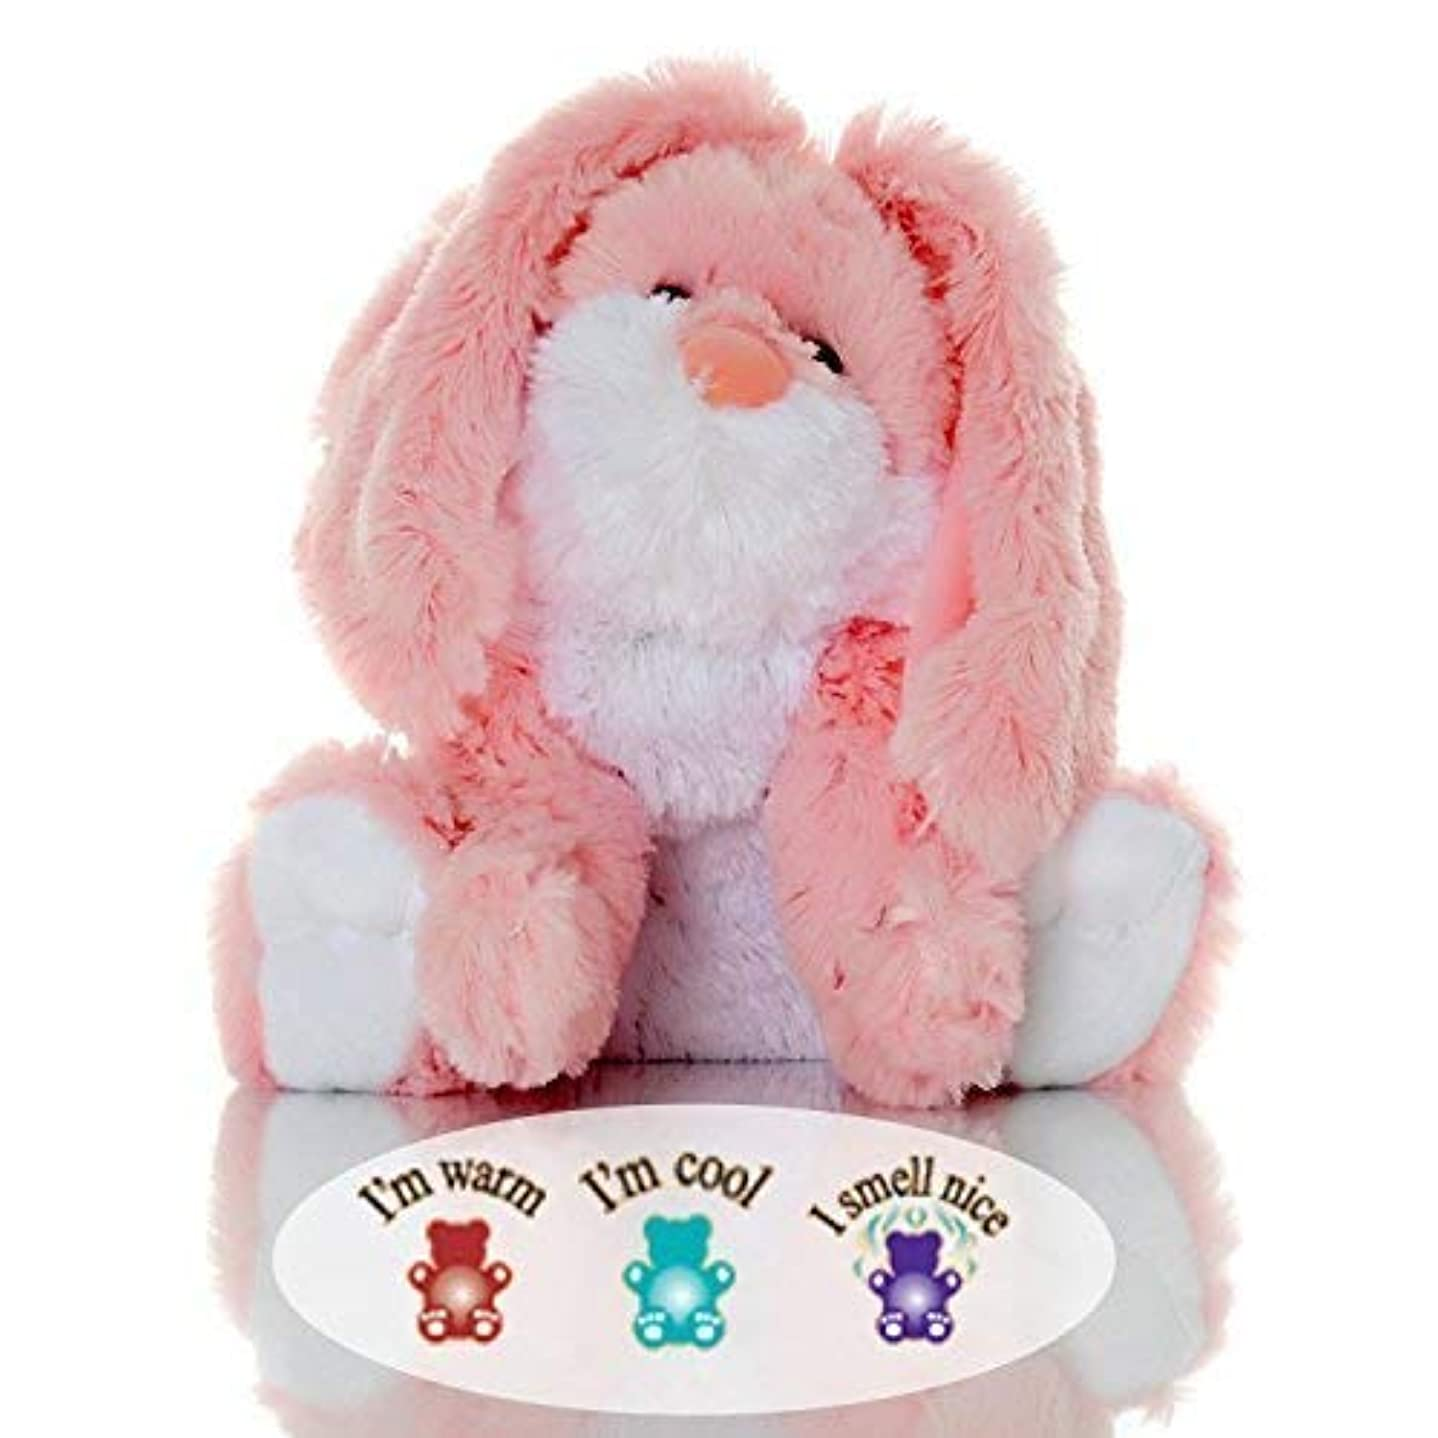 計算可能適度な省略するSootheze Rosey Bunny Rabbit - Microwavable Stuffed Animal - Weighted Lavender Scented Aromatherapy - Hot and Cold...